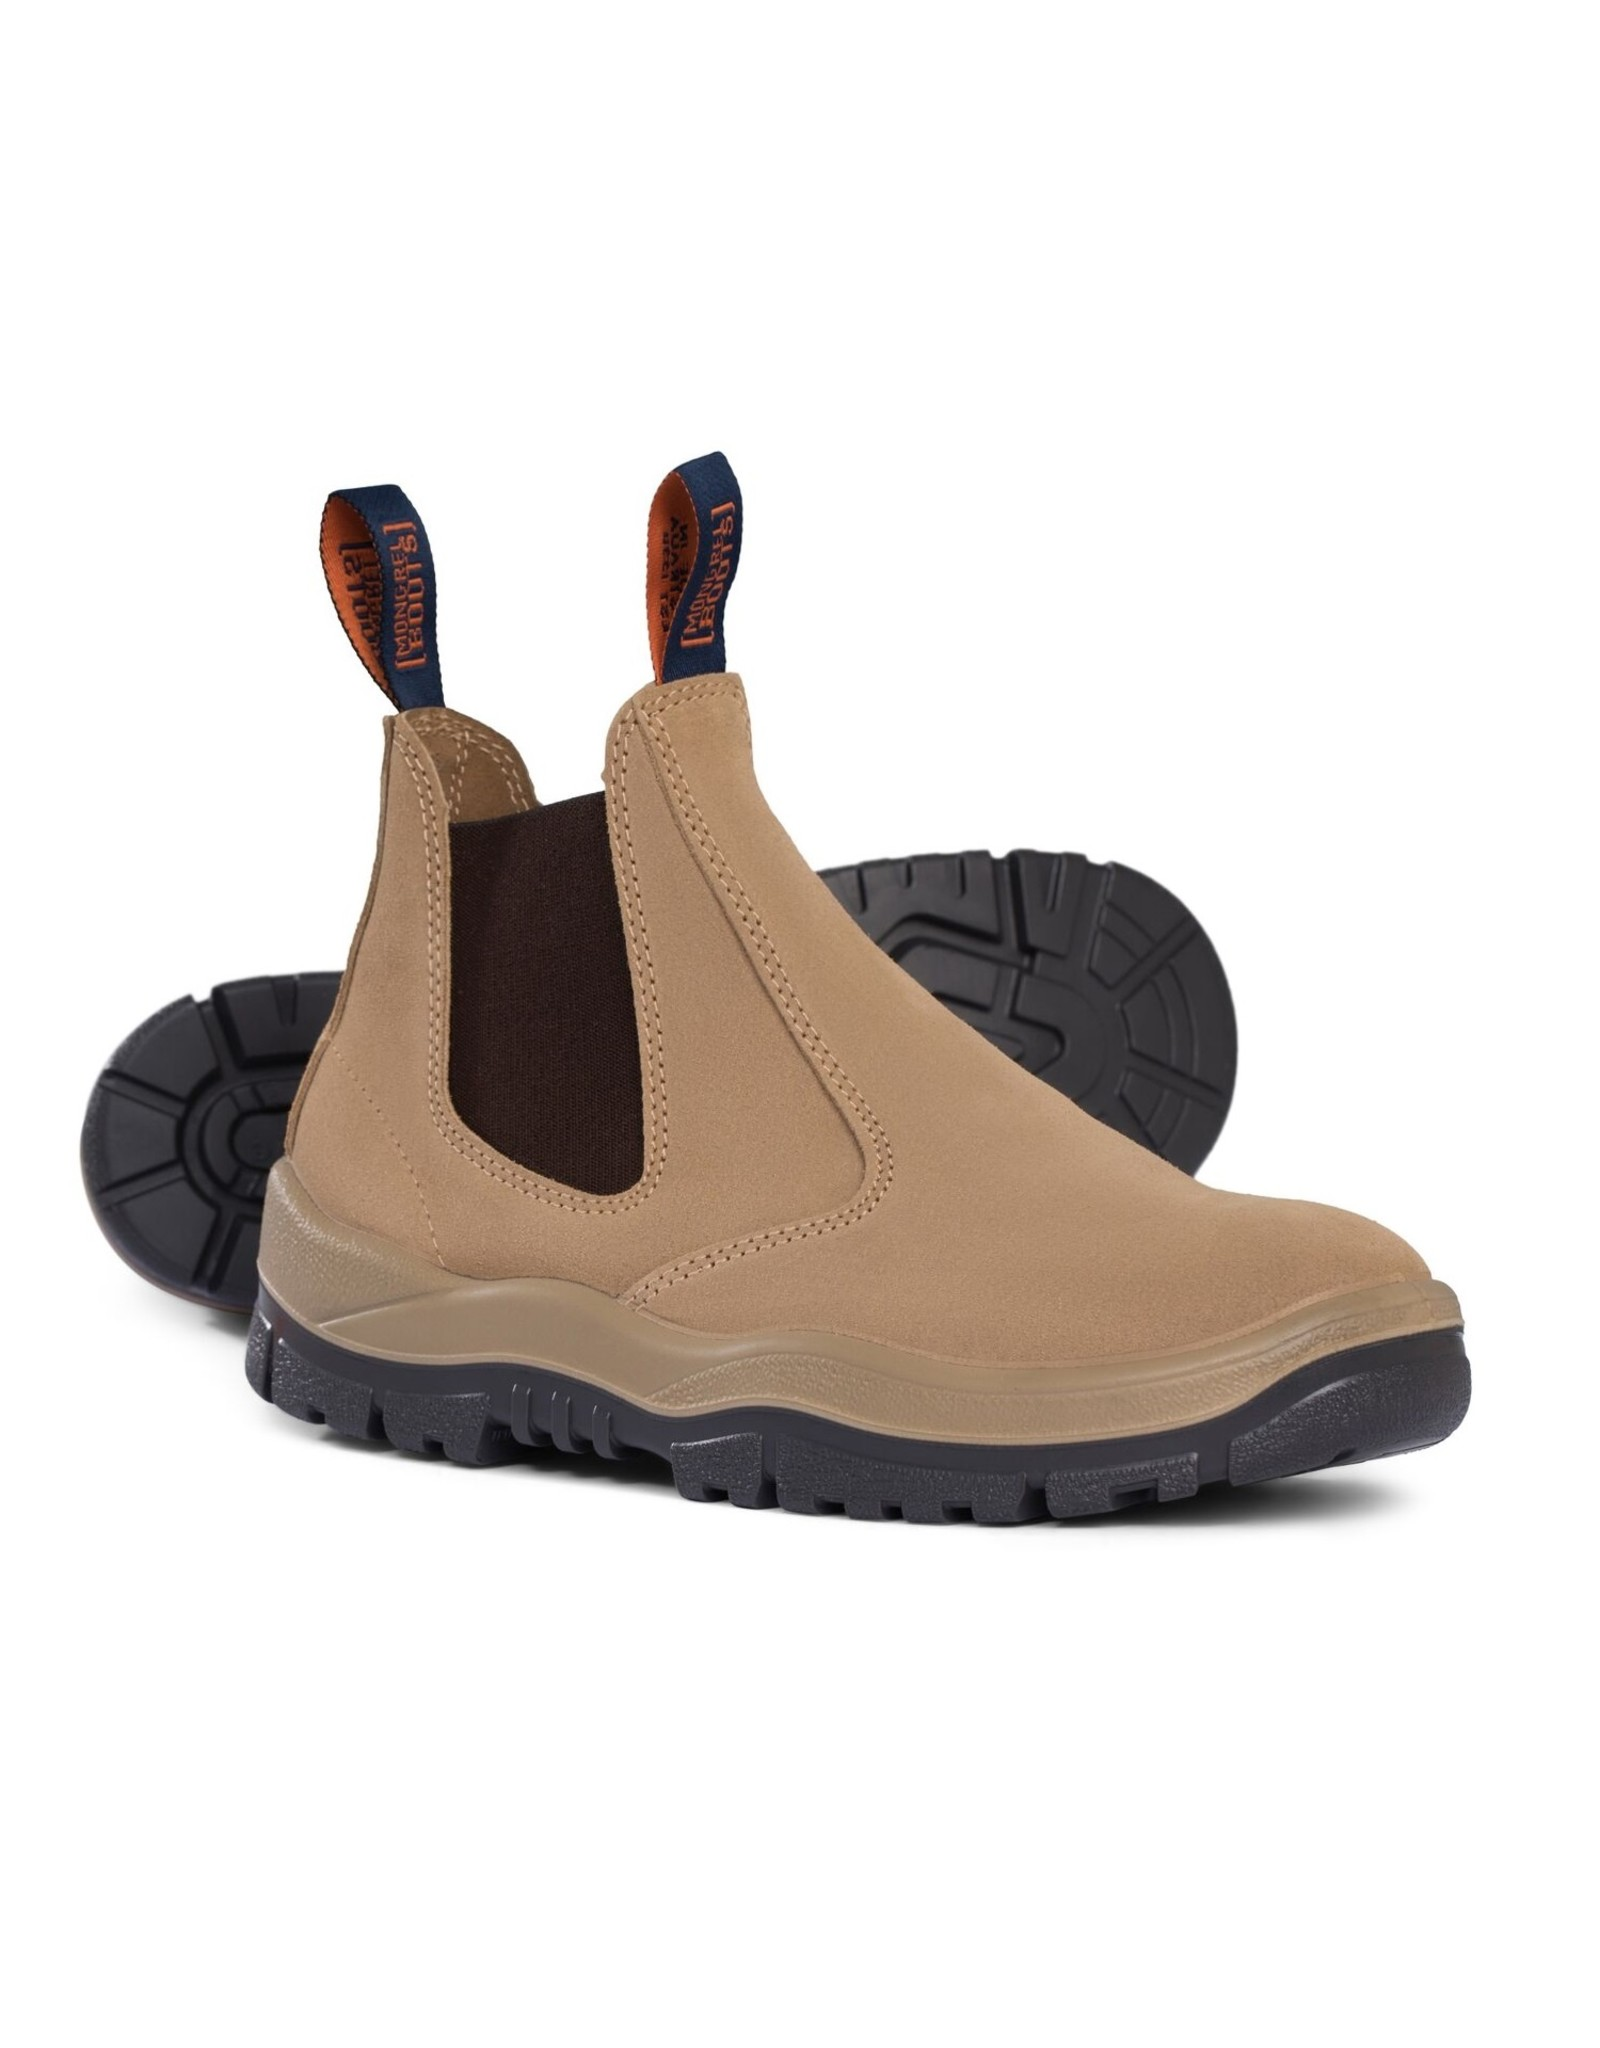 Mongrel Mongrel 'T' Series Elastic Sided Wheat Steel Cap Boot